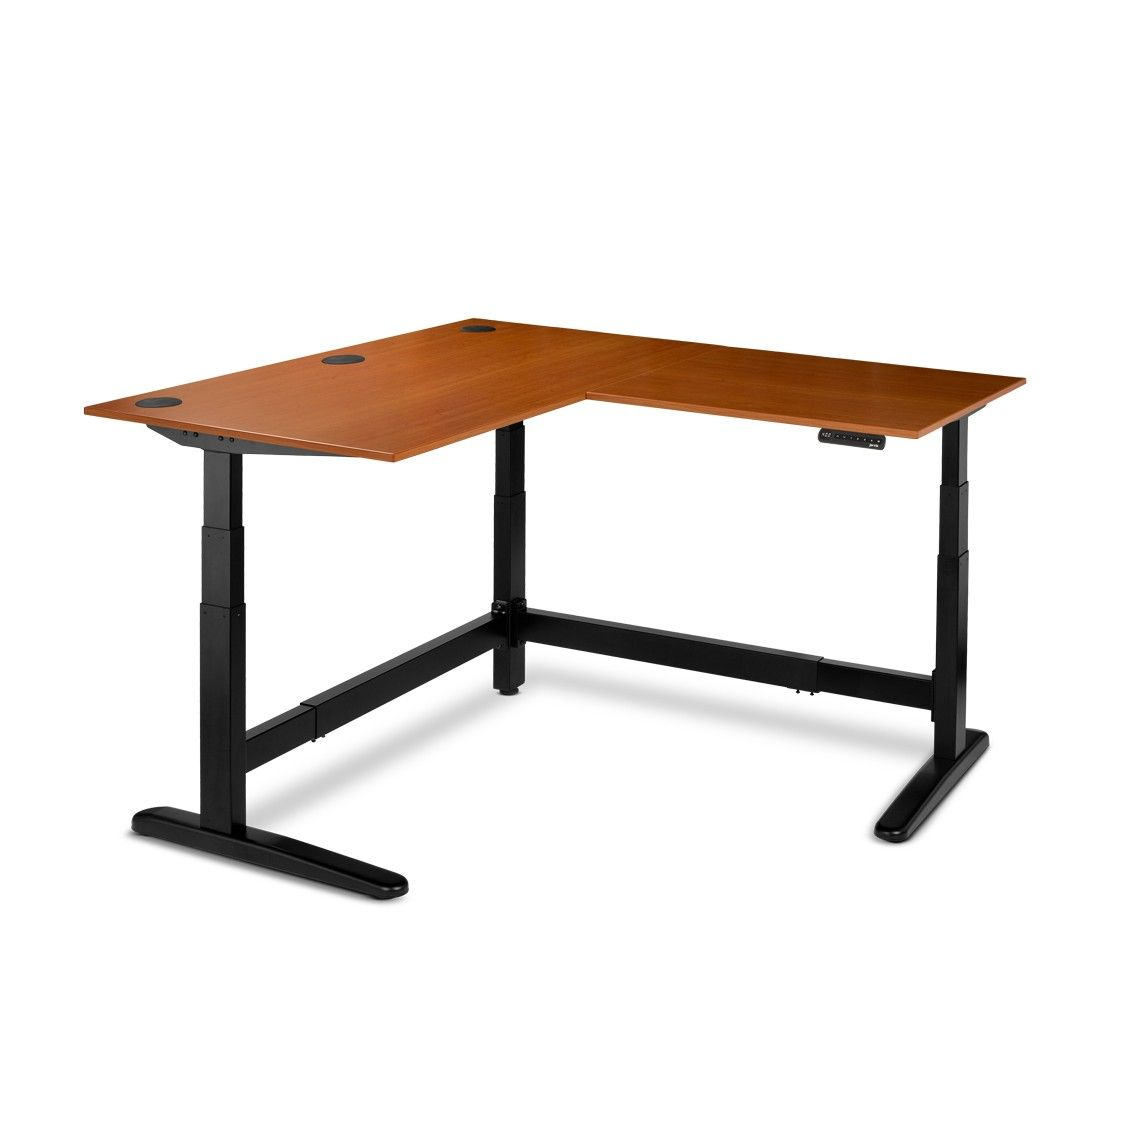 Swell Jarvis L Shaped Standing Desk Ergo Depot Products Desk Download Free Architecture Designs Xaembritishbridgeorg